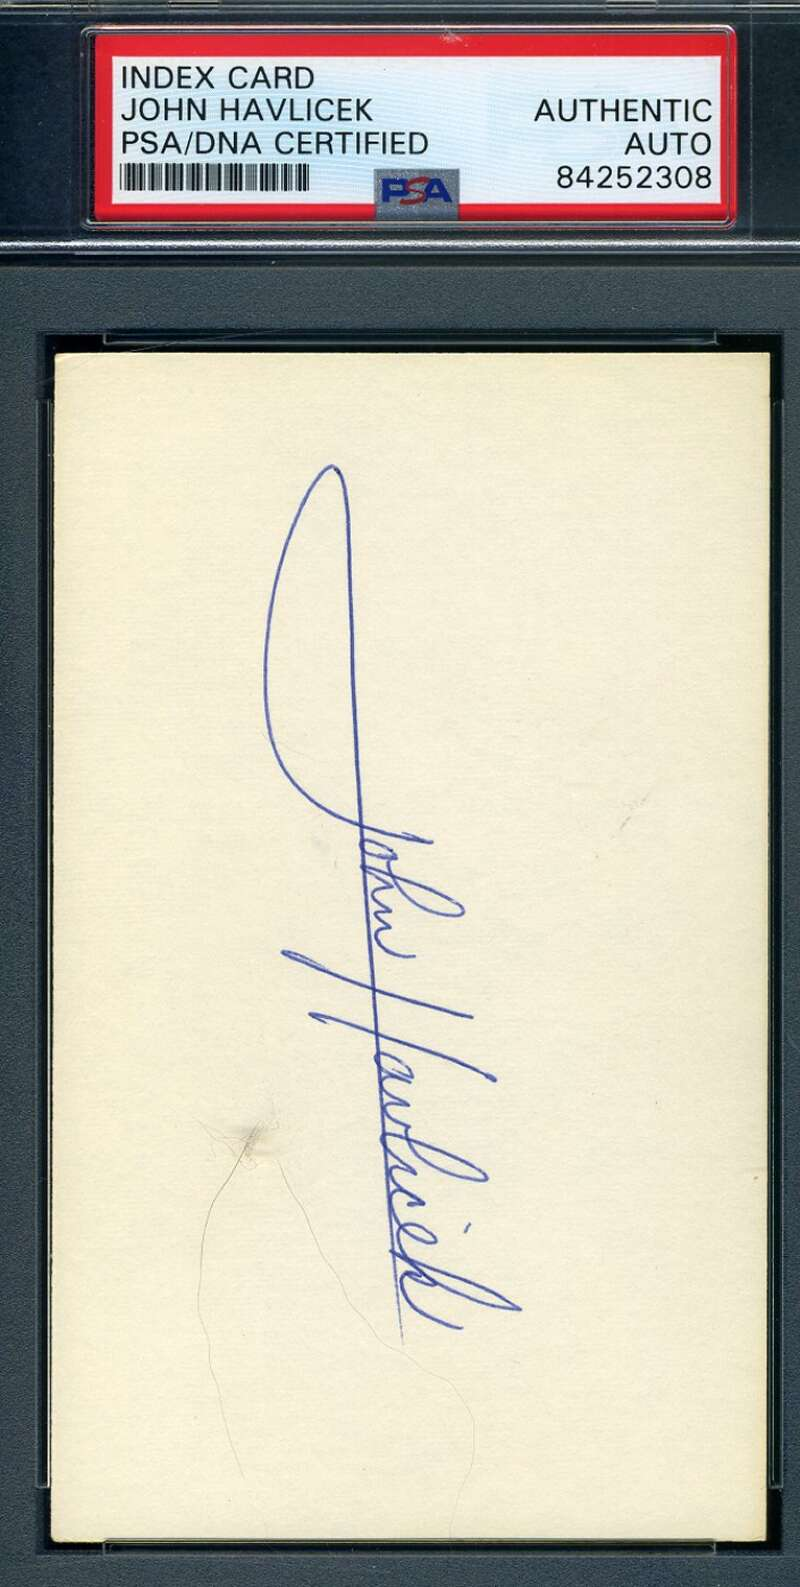 John Havlicek PSA DNA Coa Hand Signed 3x5 Index Card Autograph